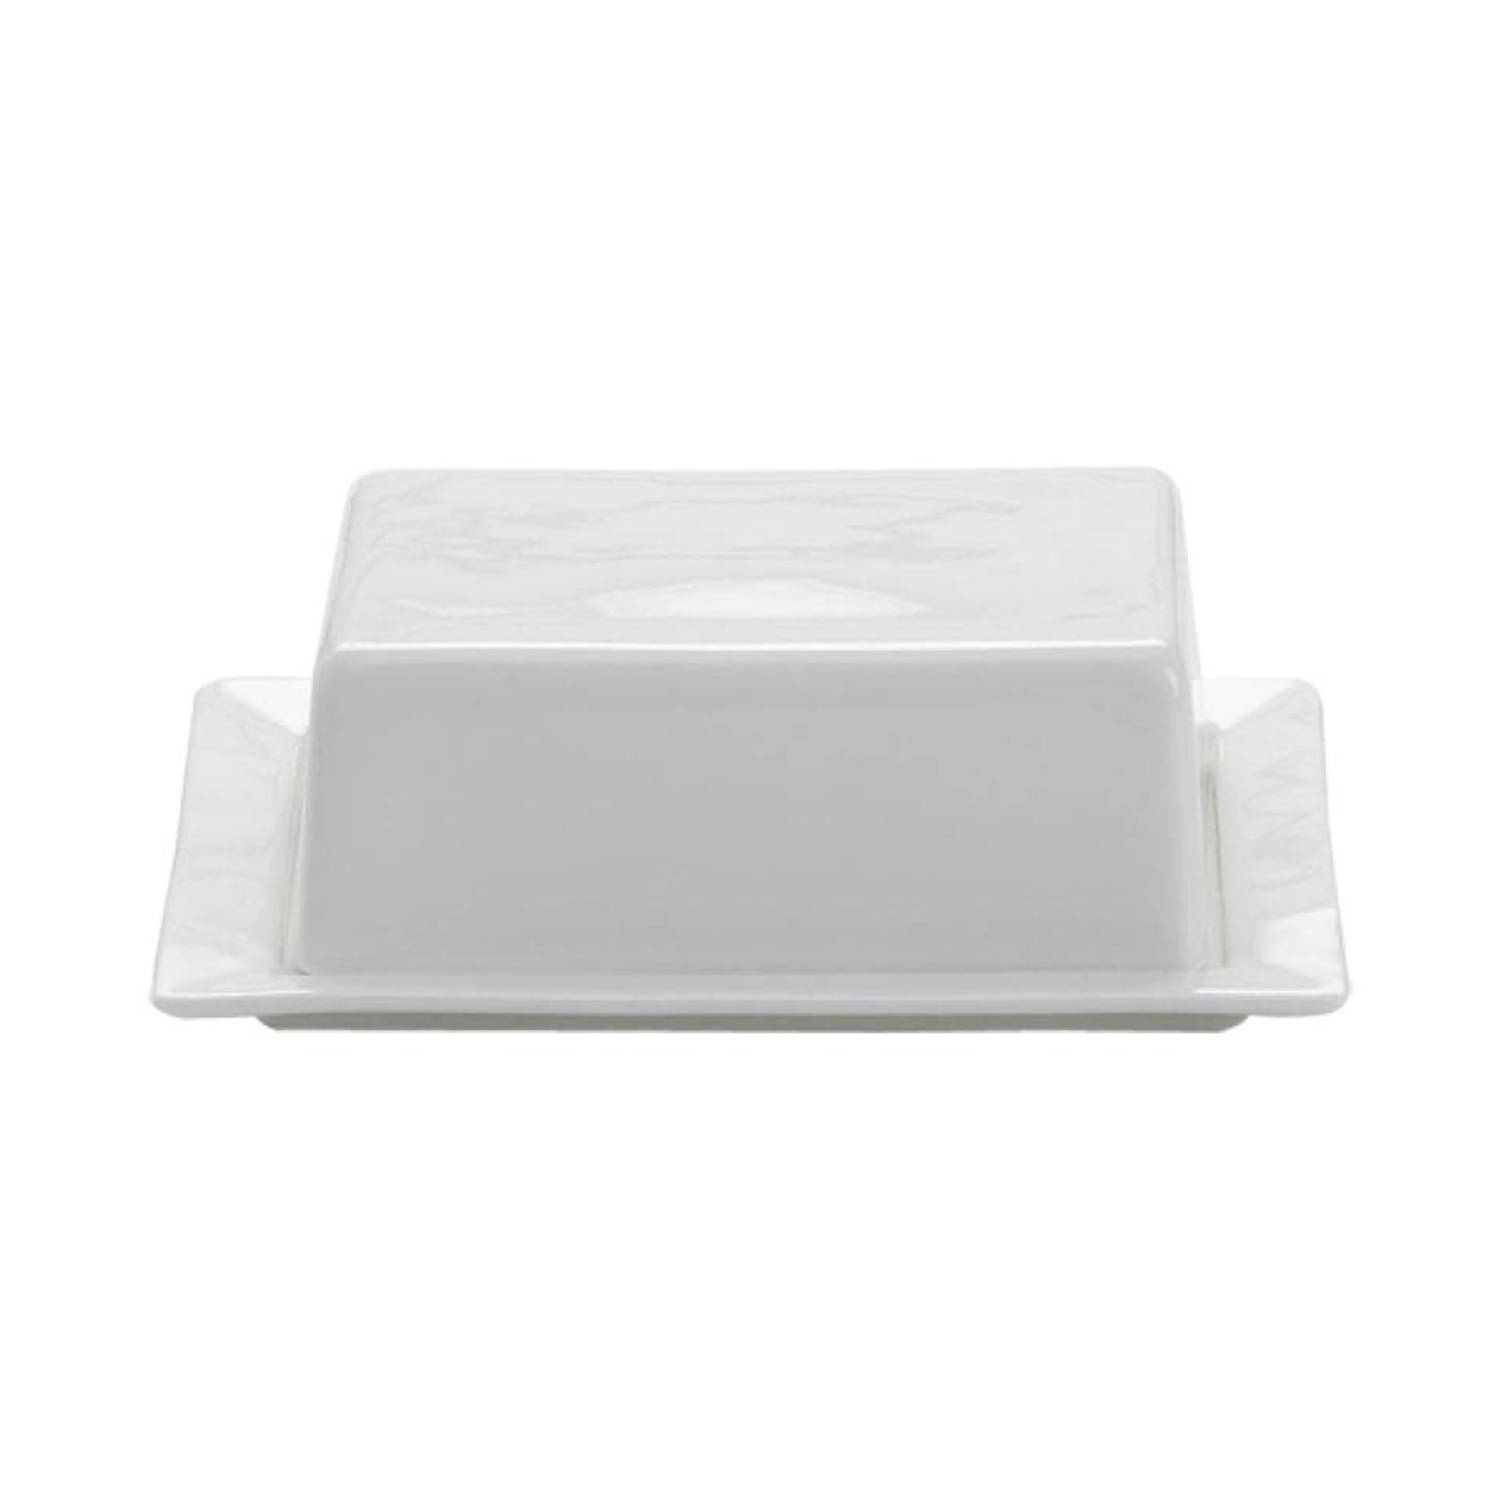 Maxwell and Williams White Basics botervloot 16 x 13 cm